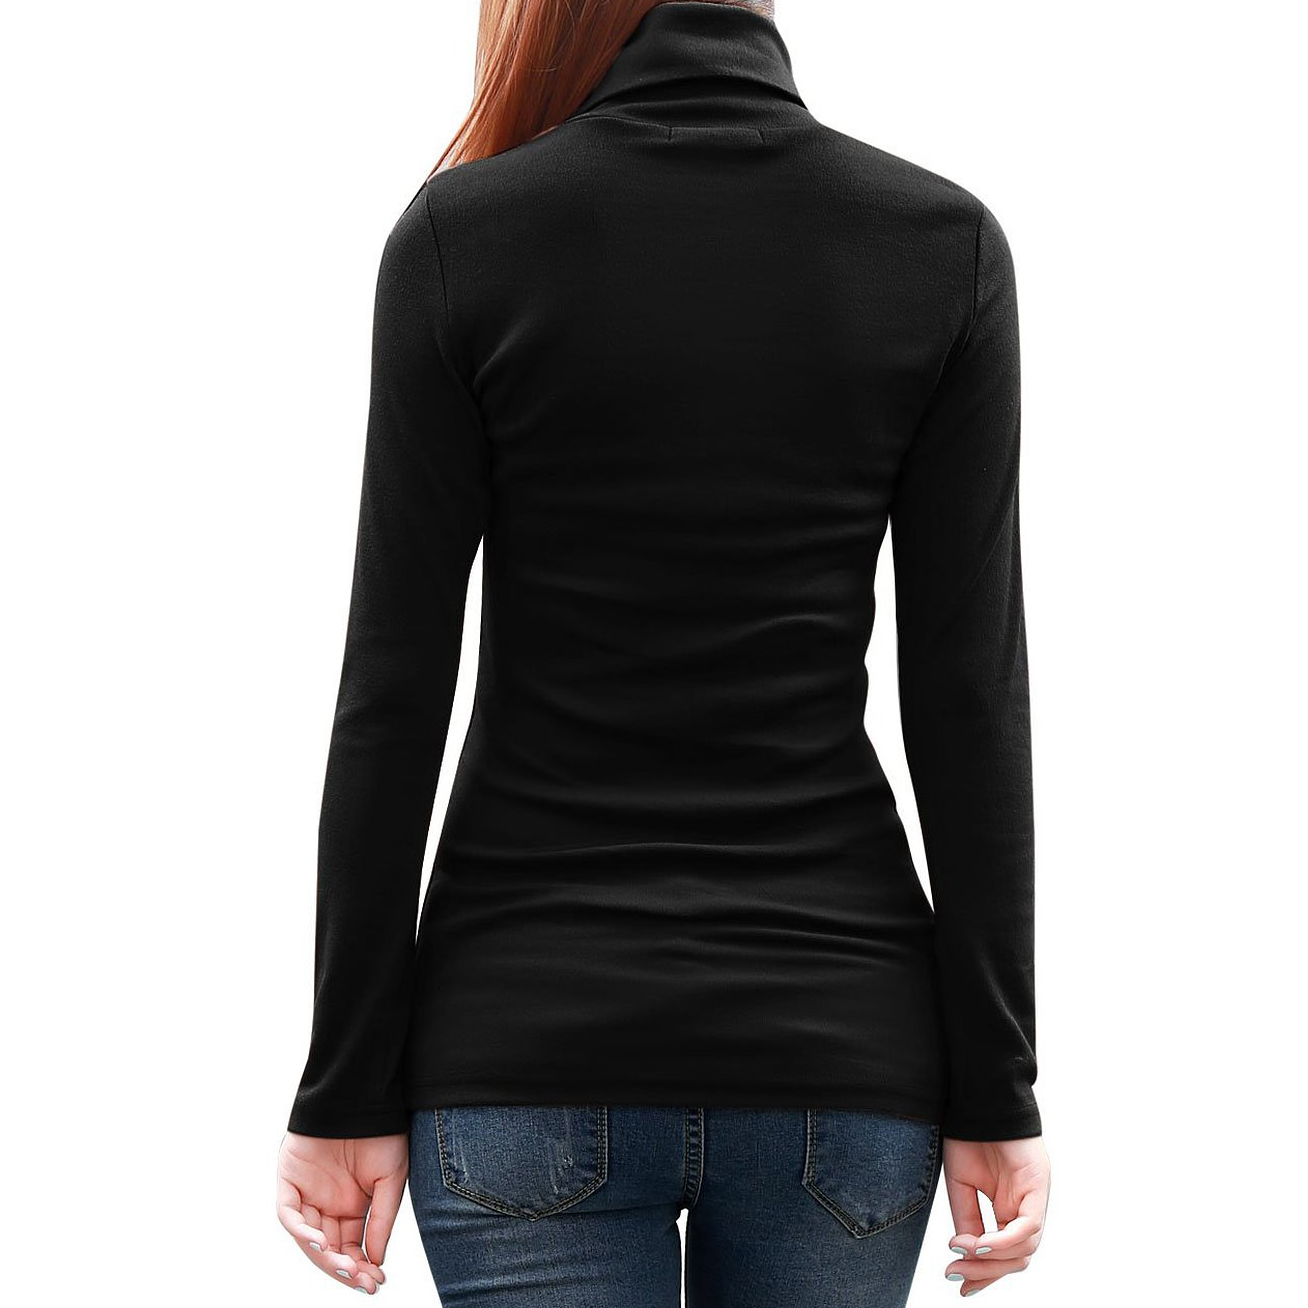 Women Turtleneck Long Sleeve Fitted Knit Shirt Stretchy